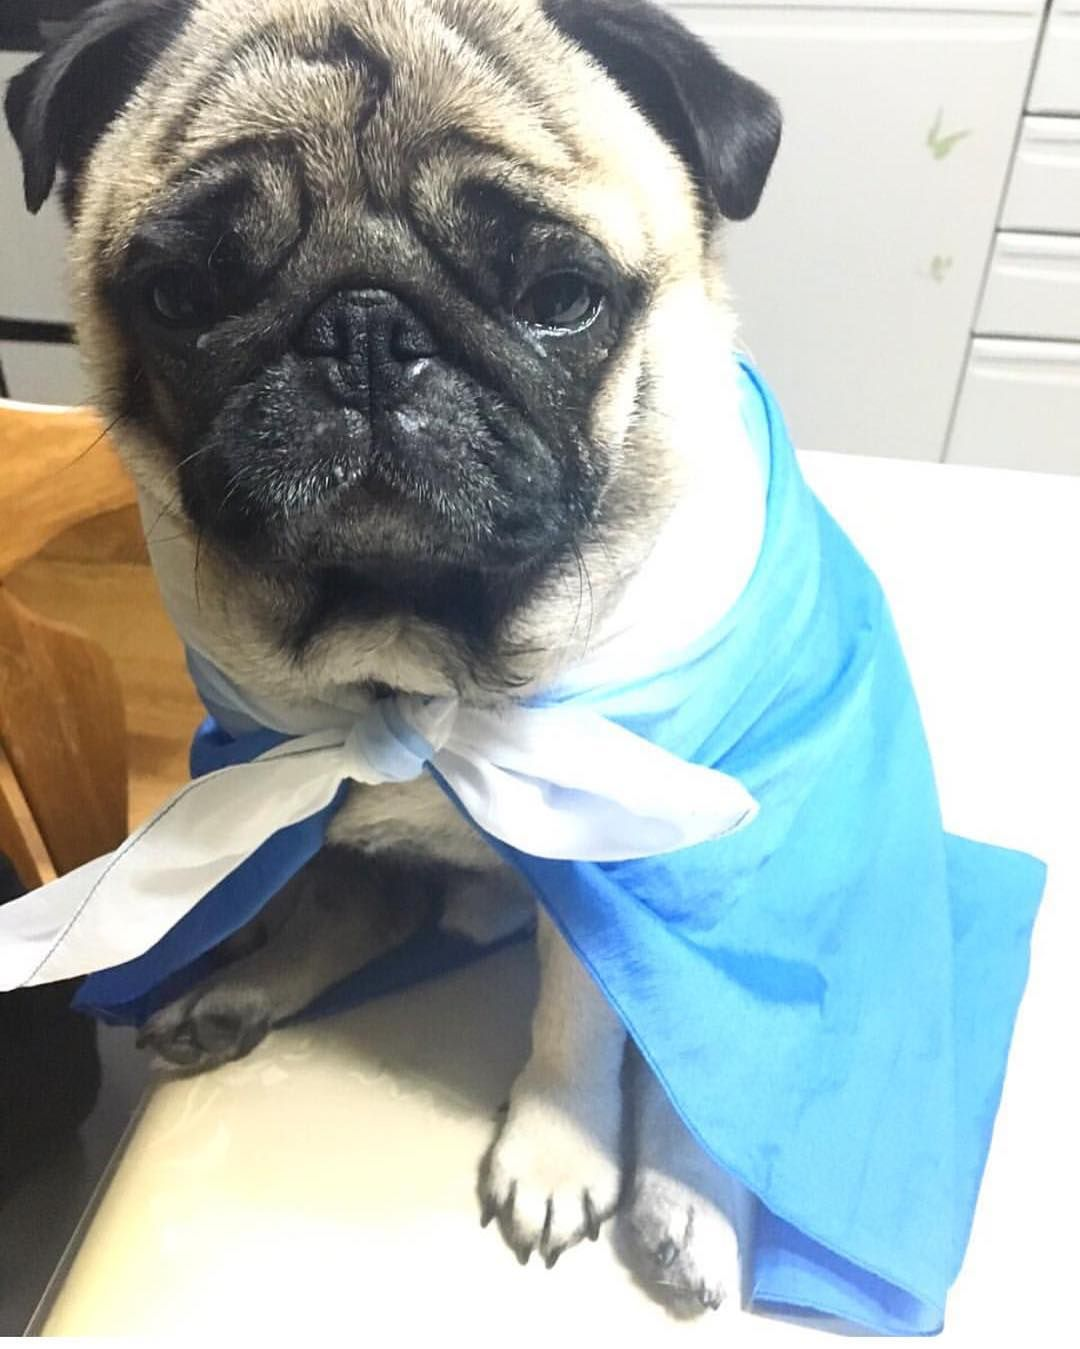 If You Think A Fancy Blue Cape Will Impress This Pug Think Again